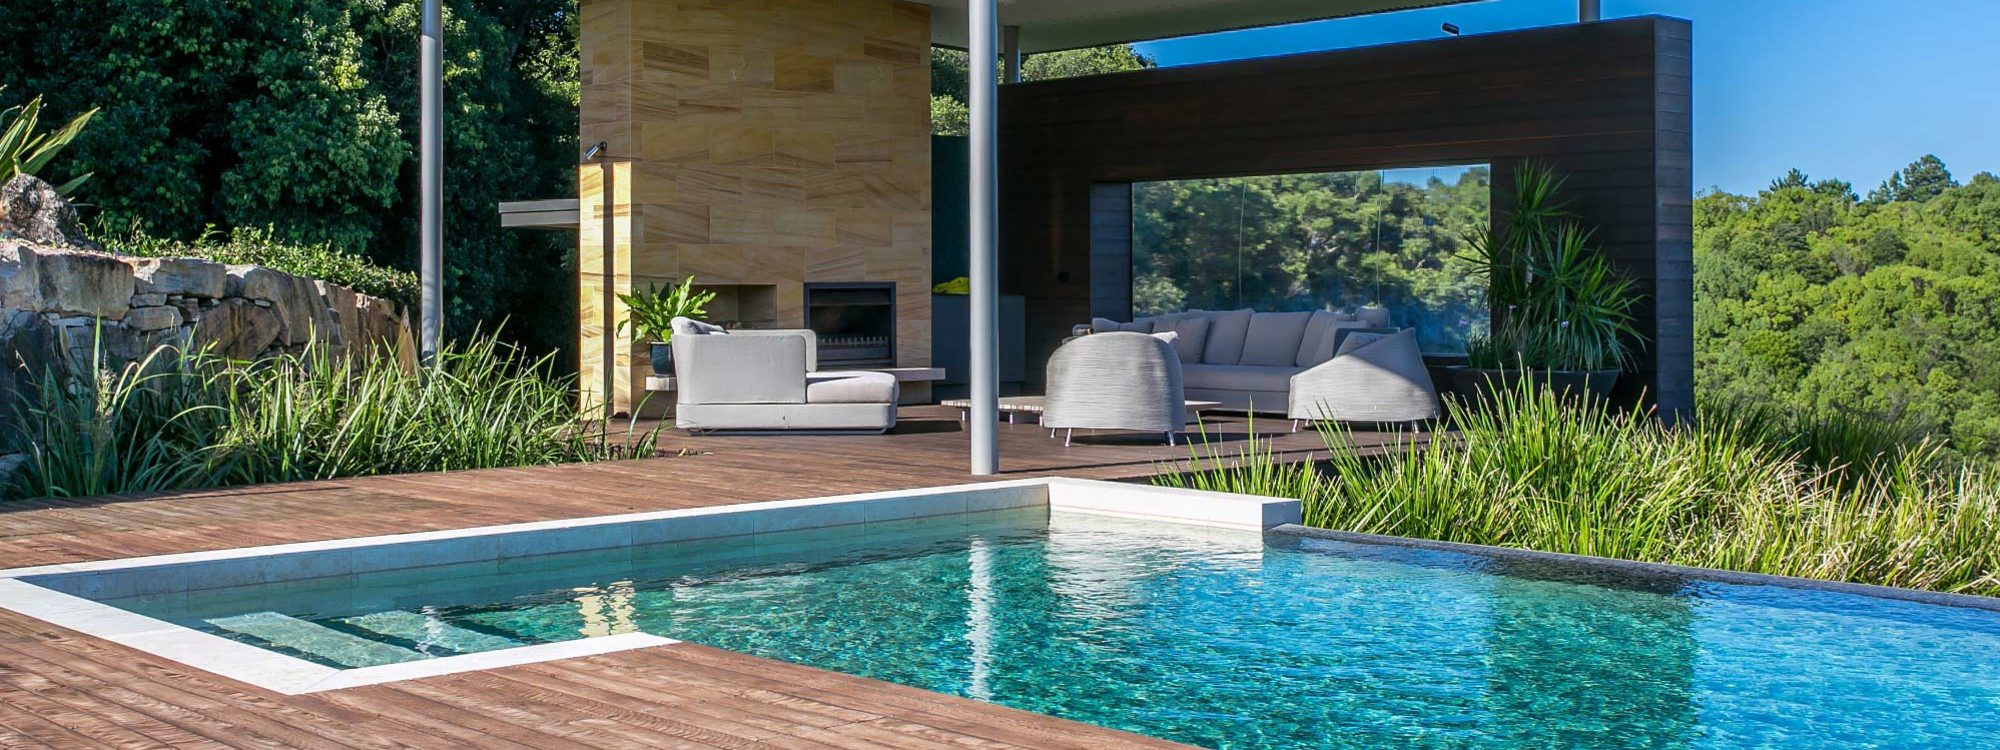 Callistemon View - Byron Bay Hinterland - Federal - infinity pool cabana